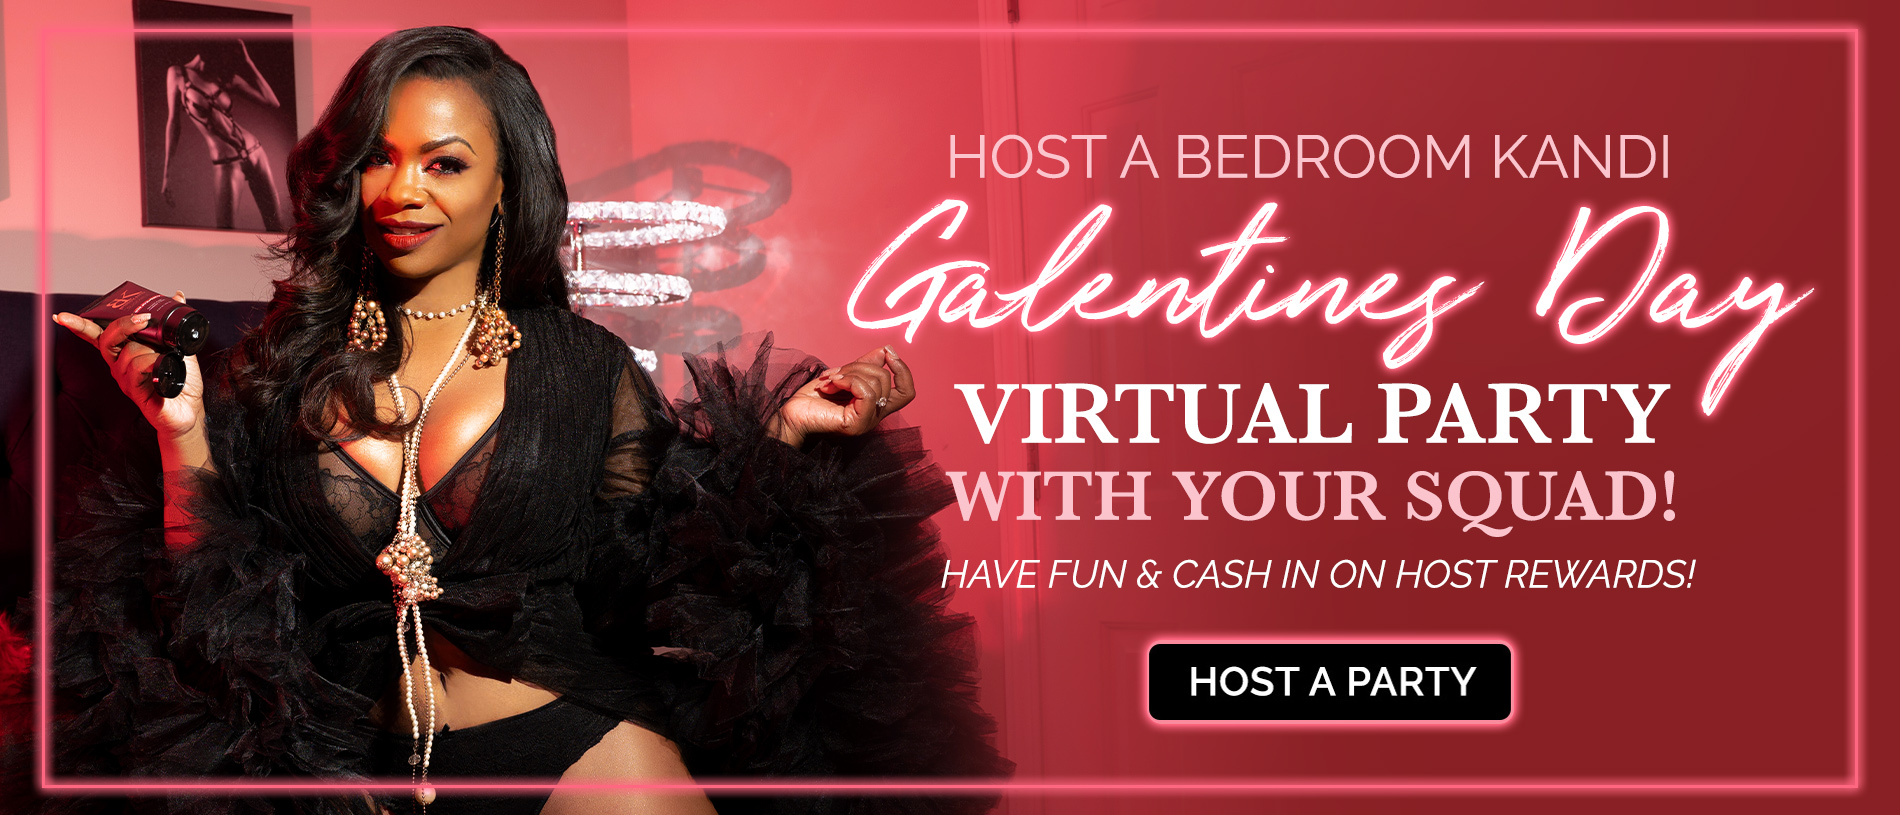 Host a Virtual Valentine's Party!